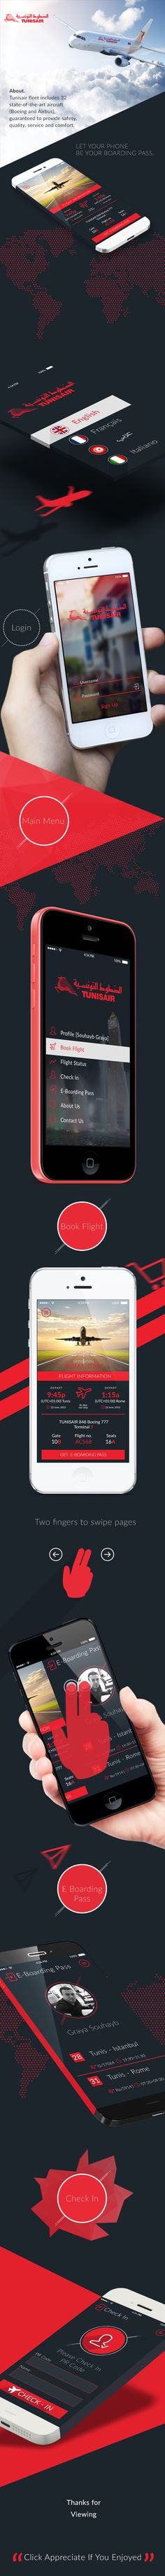 TUNISAIR App IOS7 by Souhayb Grayaa, via Behance